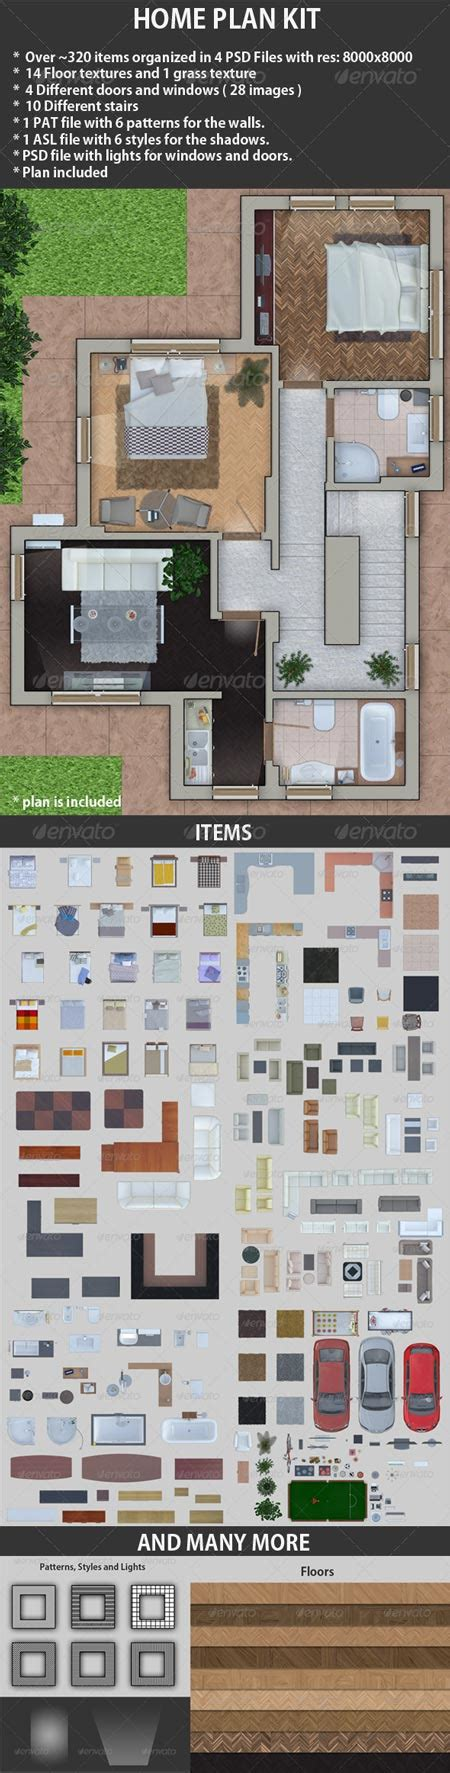 3d home design kit furniture plan psd layered material all design template